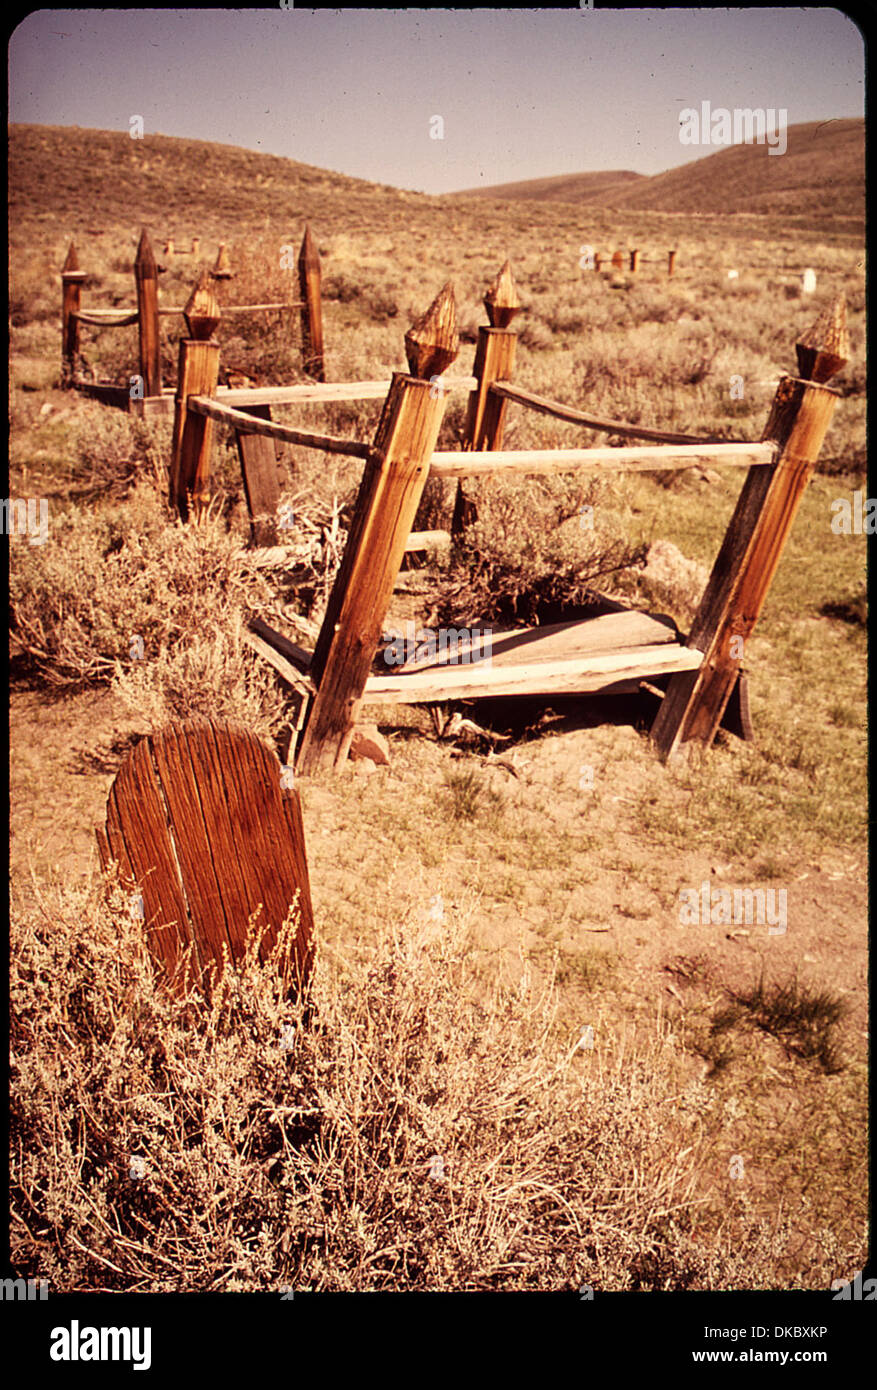 A WOODEN TOMBSTONE AND CEMETERY IN BODIE STATE HISTORICAL PARK. BODIE IS ONE OF THE MOST WELL-PRESERVED GHOST TOWNS... - Stock Image